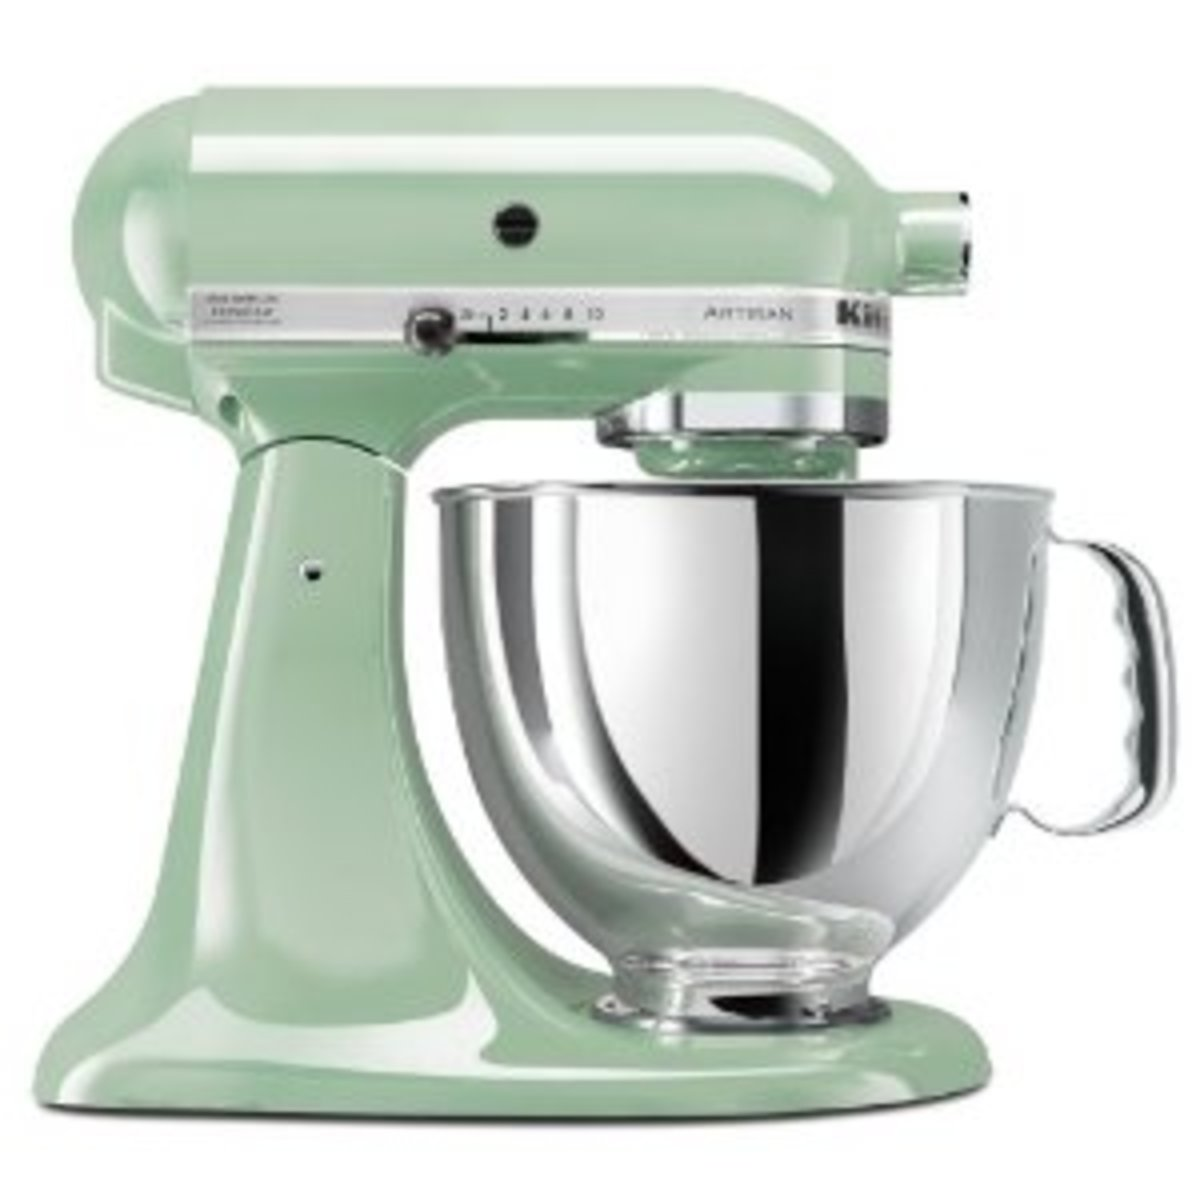 Vintage Inspired KitchenAid mixer